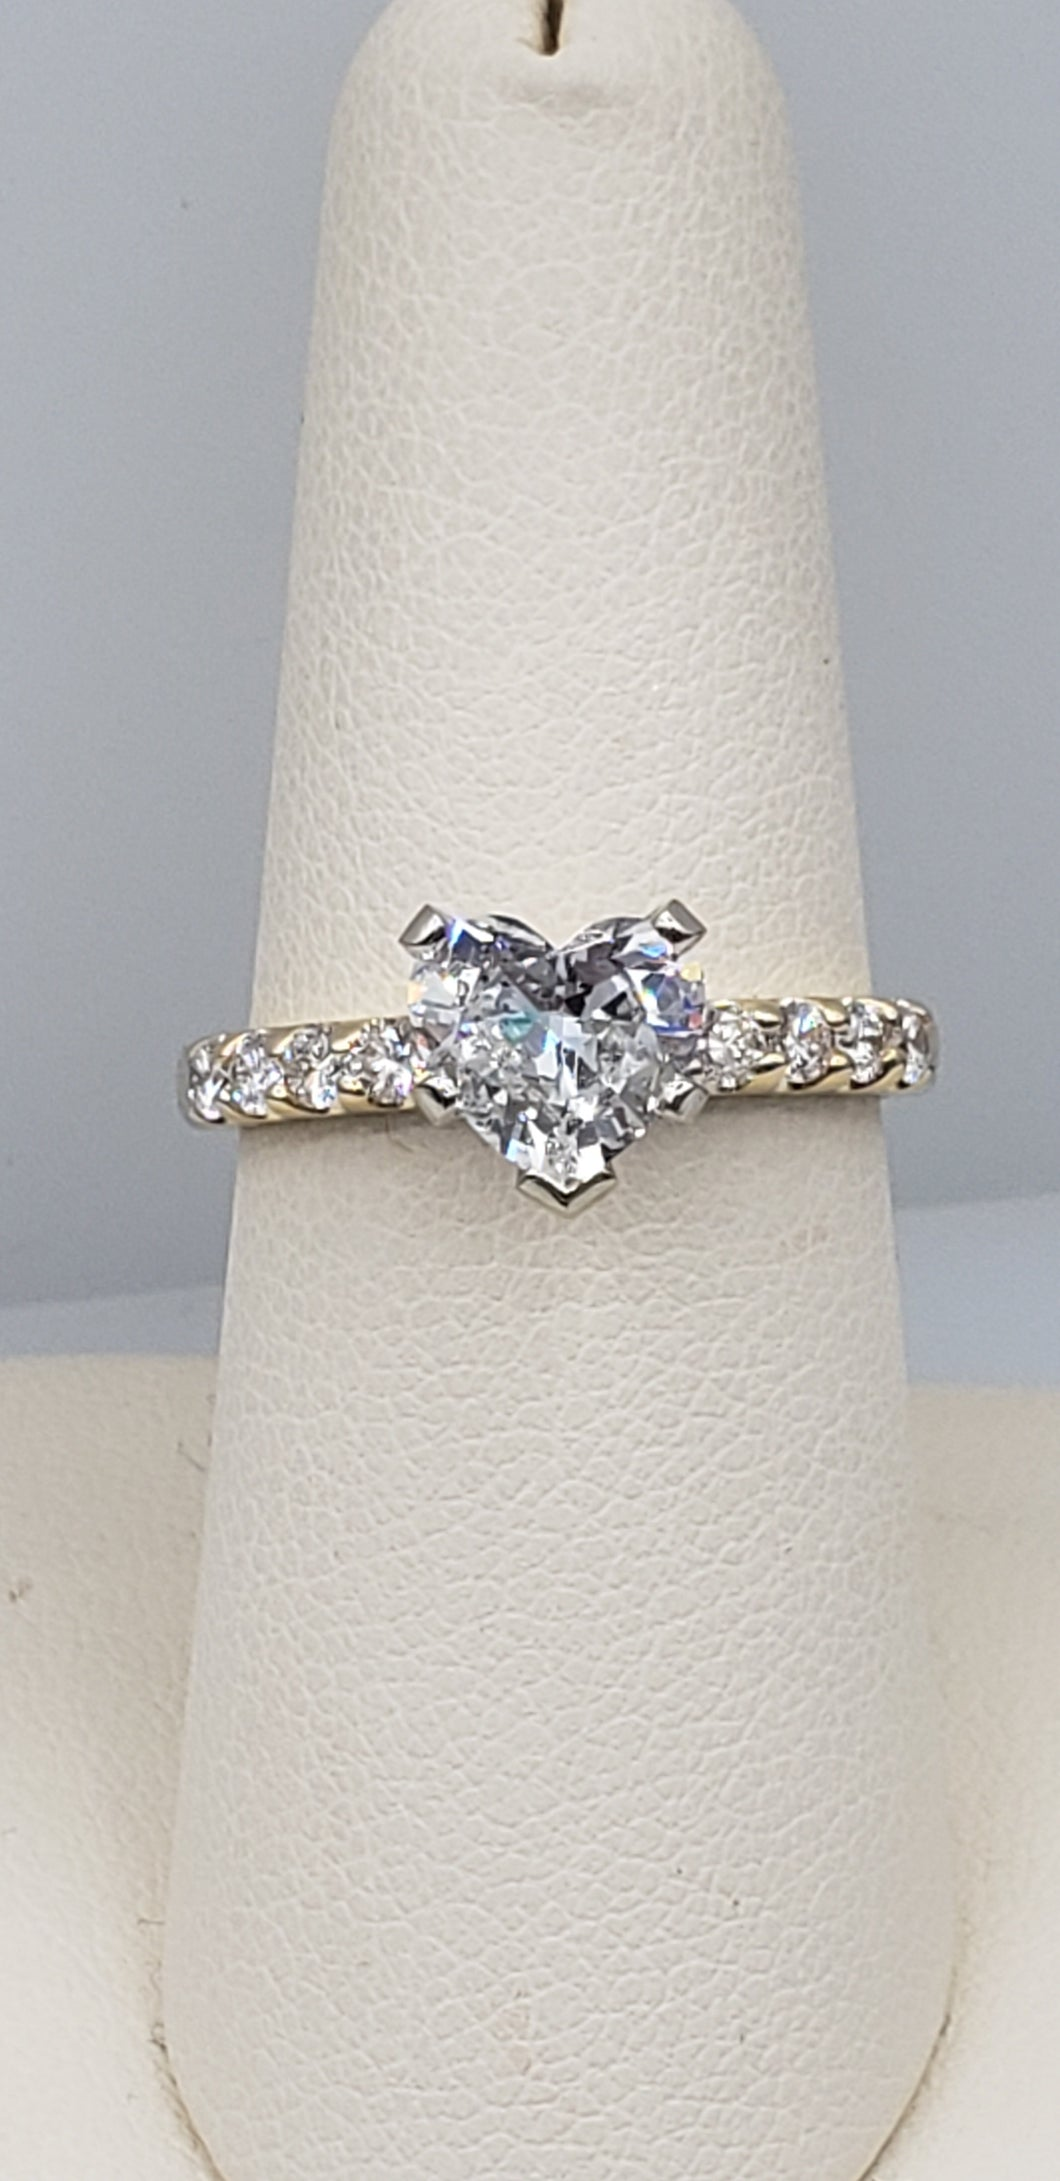 14K Yellow Gold Heart Shaped Diamond Engagement Ring